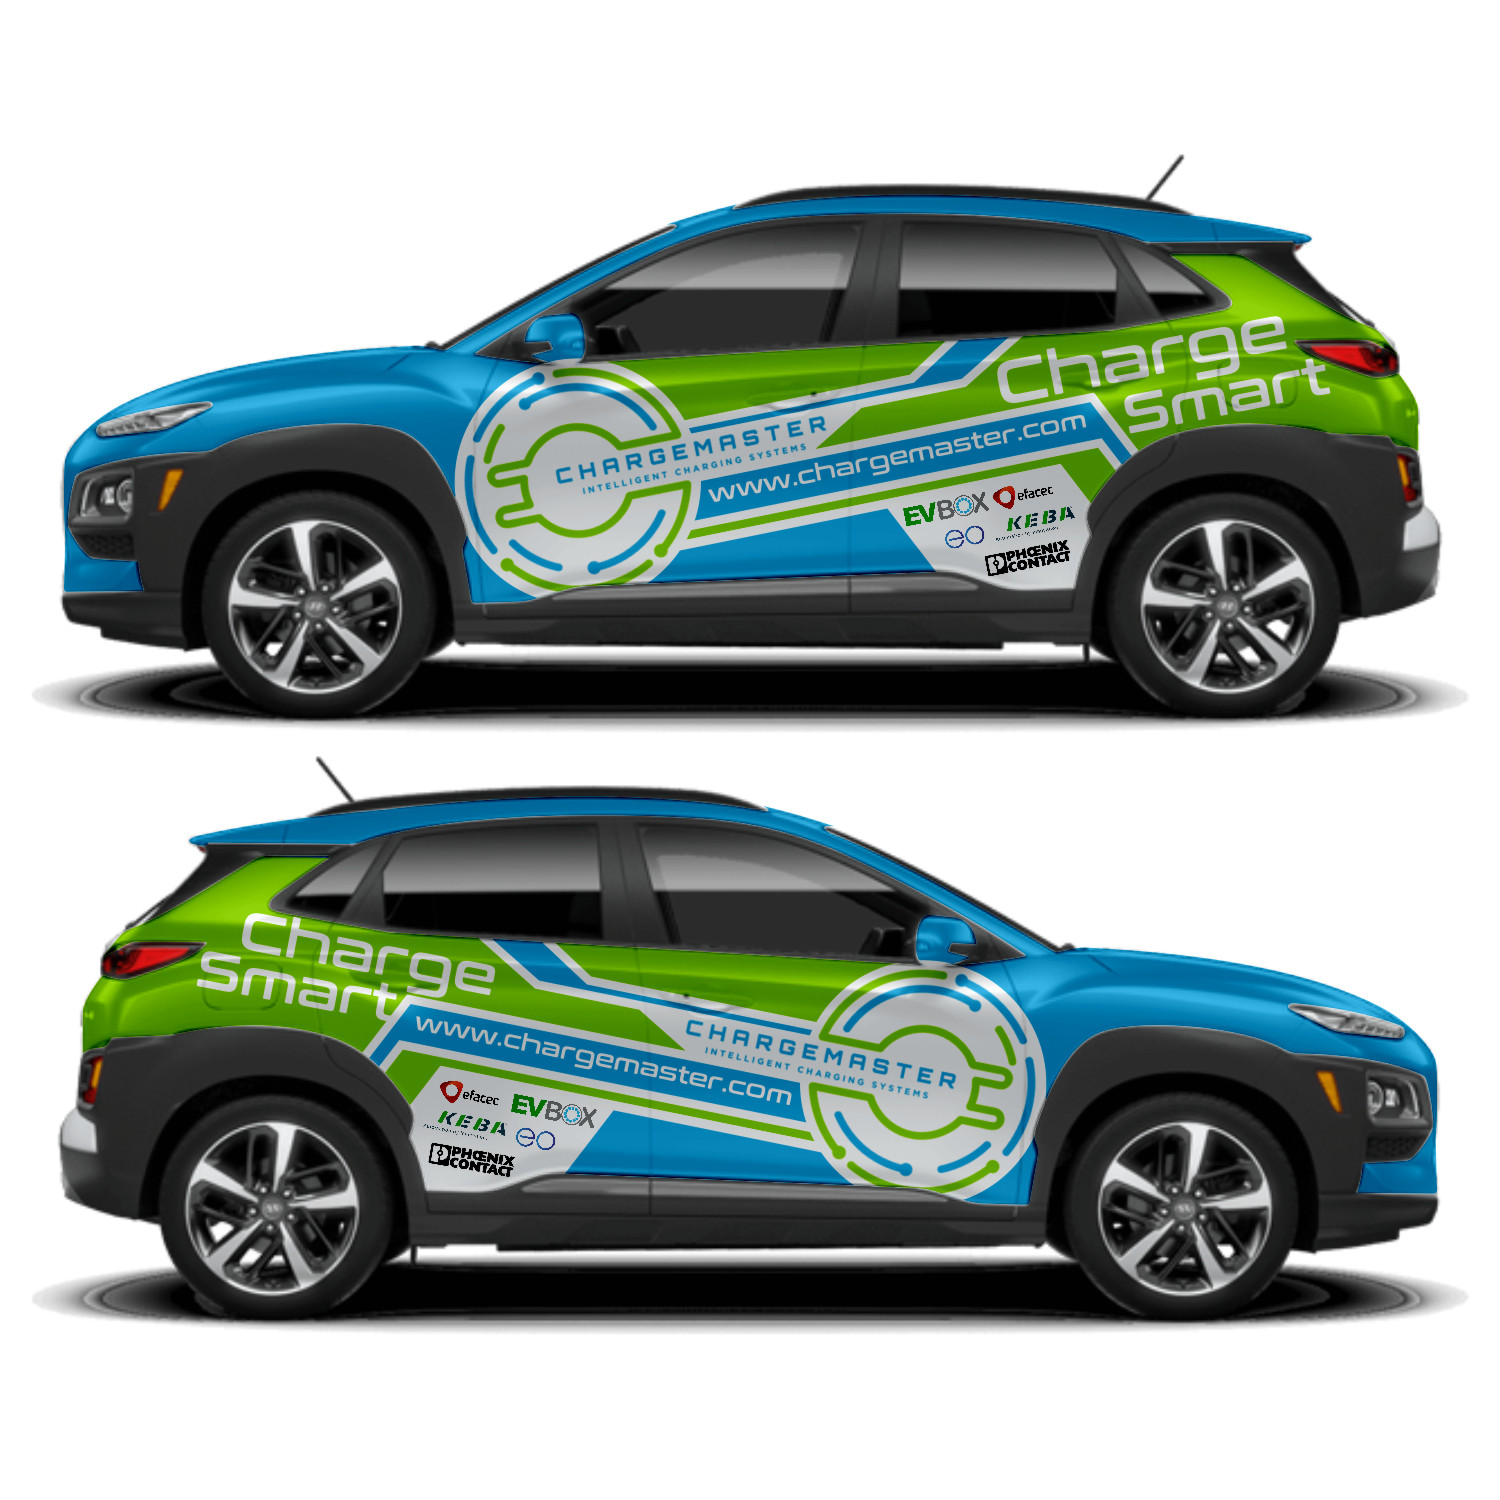 3e027907c9 Car Wrap Design by DG+ for this project